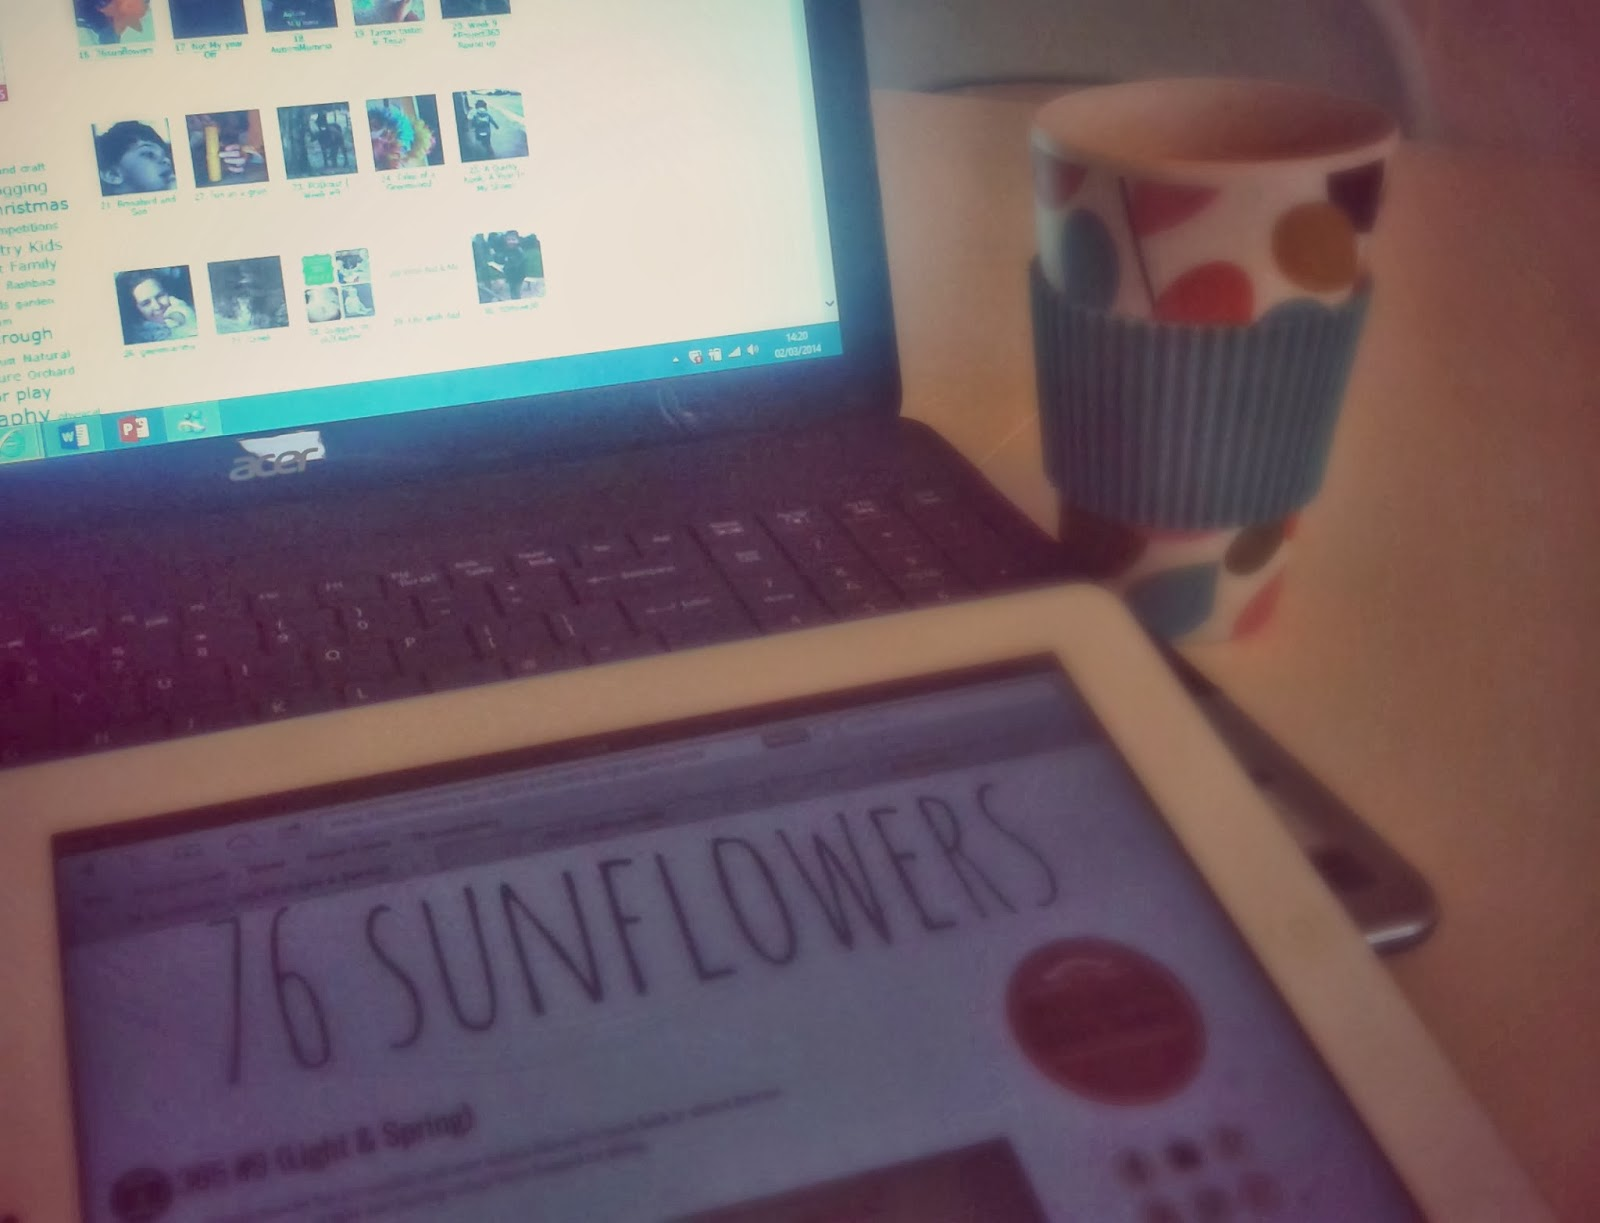 Project 365 day 61 - Blogging day // 76sunflowers